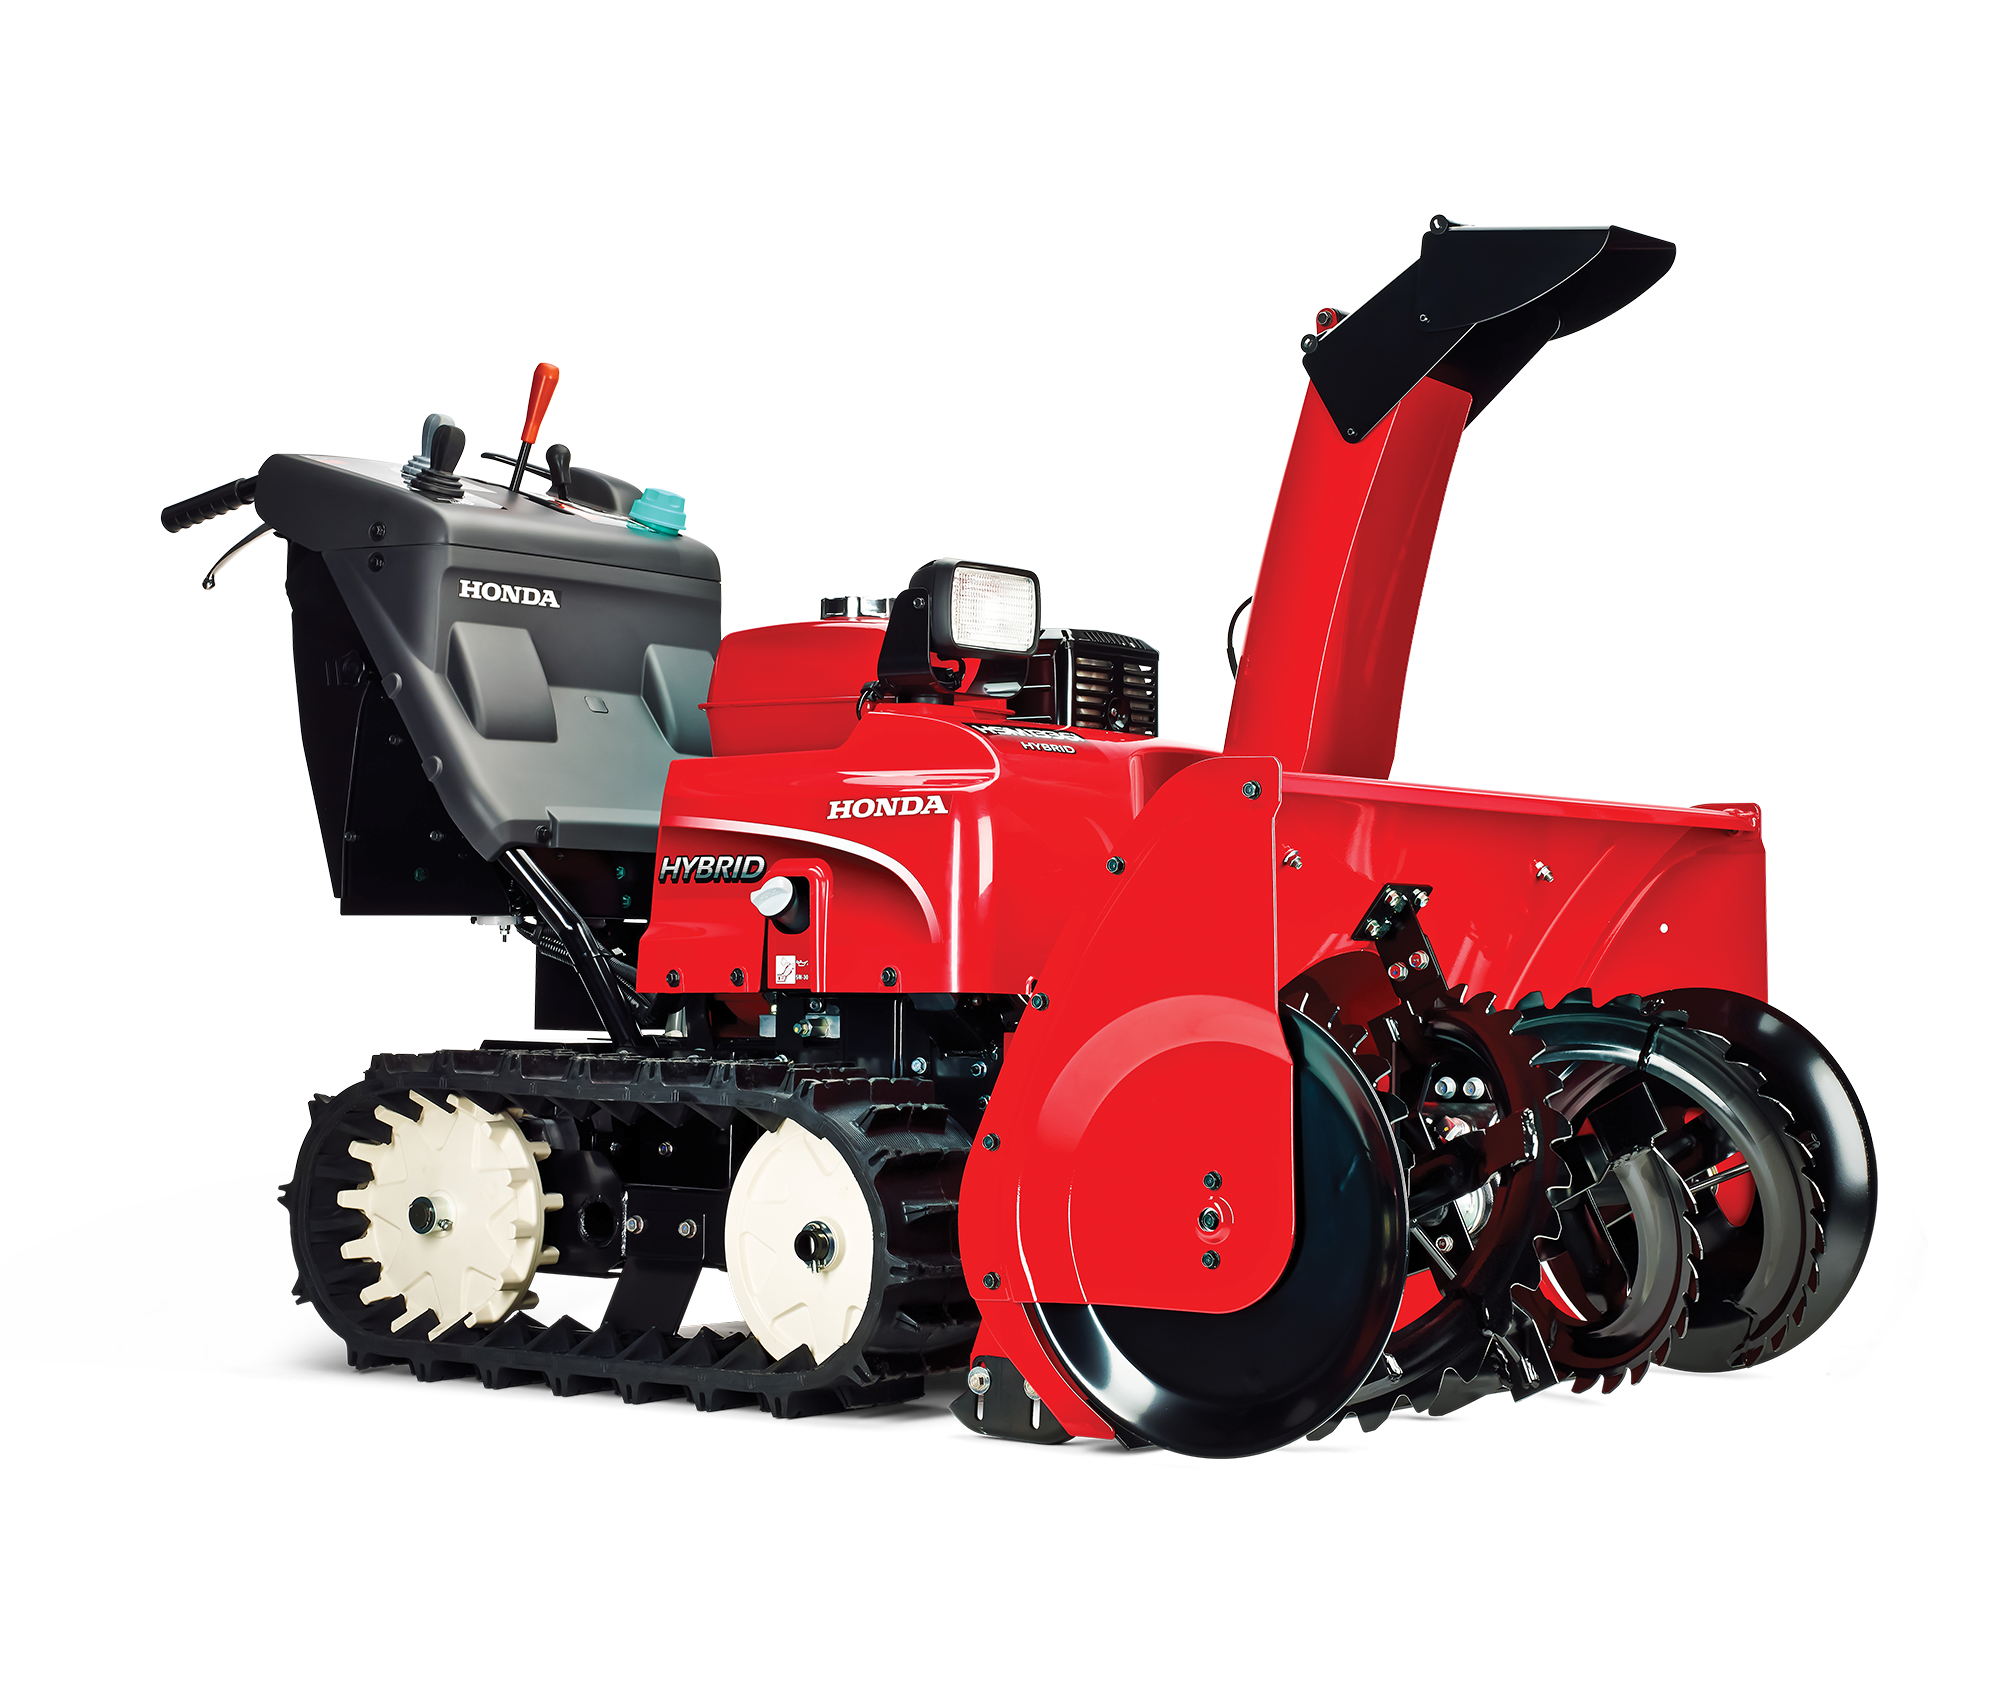 Image Of The 36 Hybrid I Control ES Snowblower